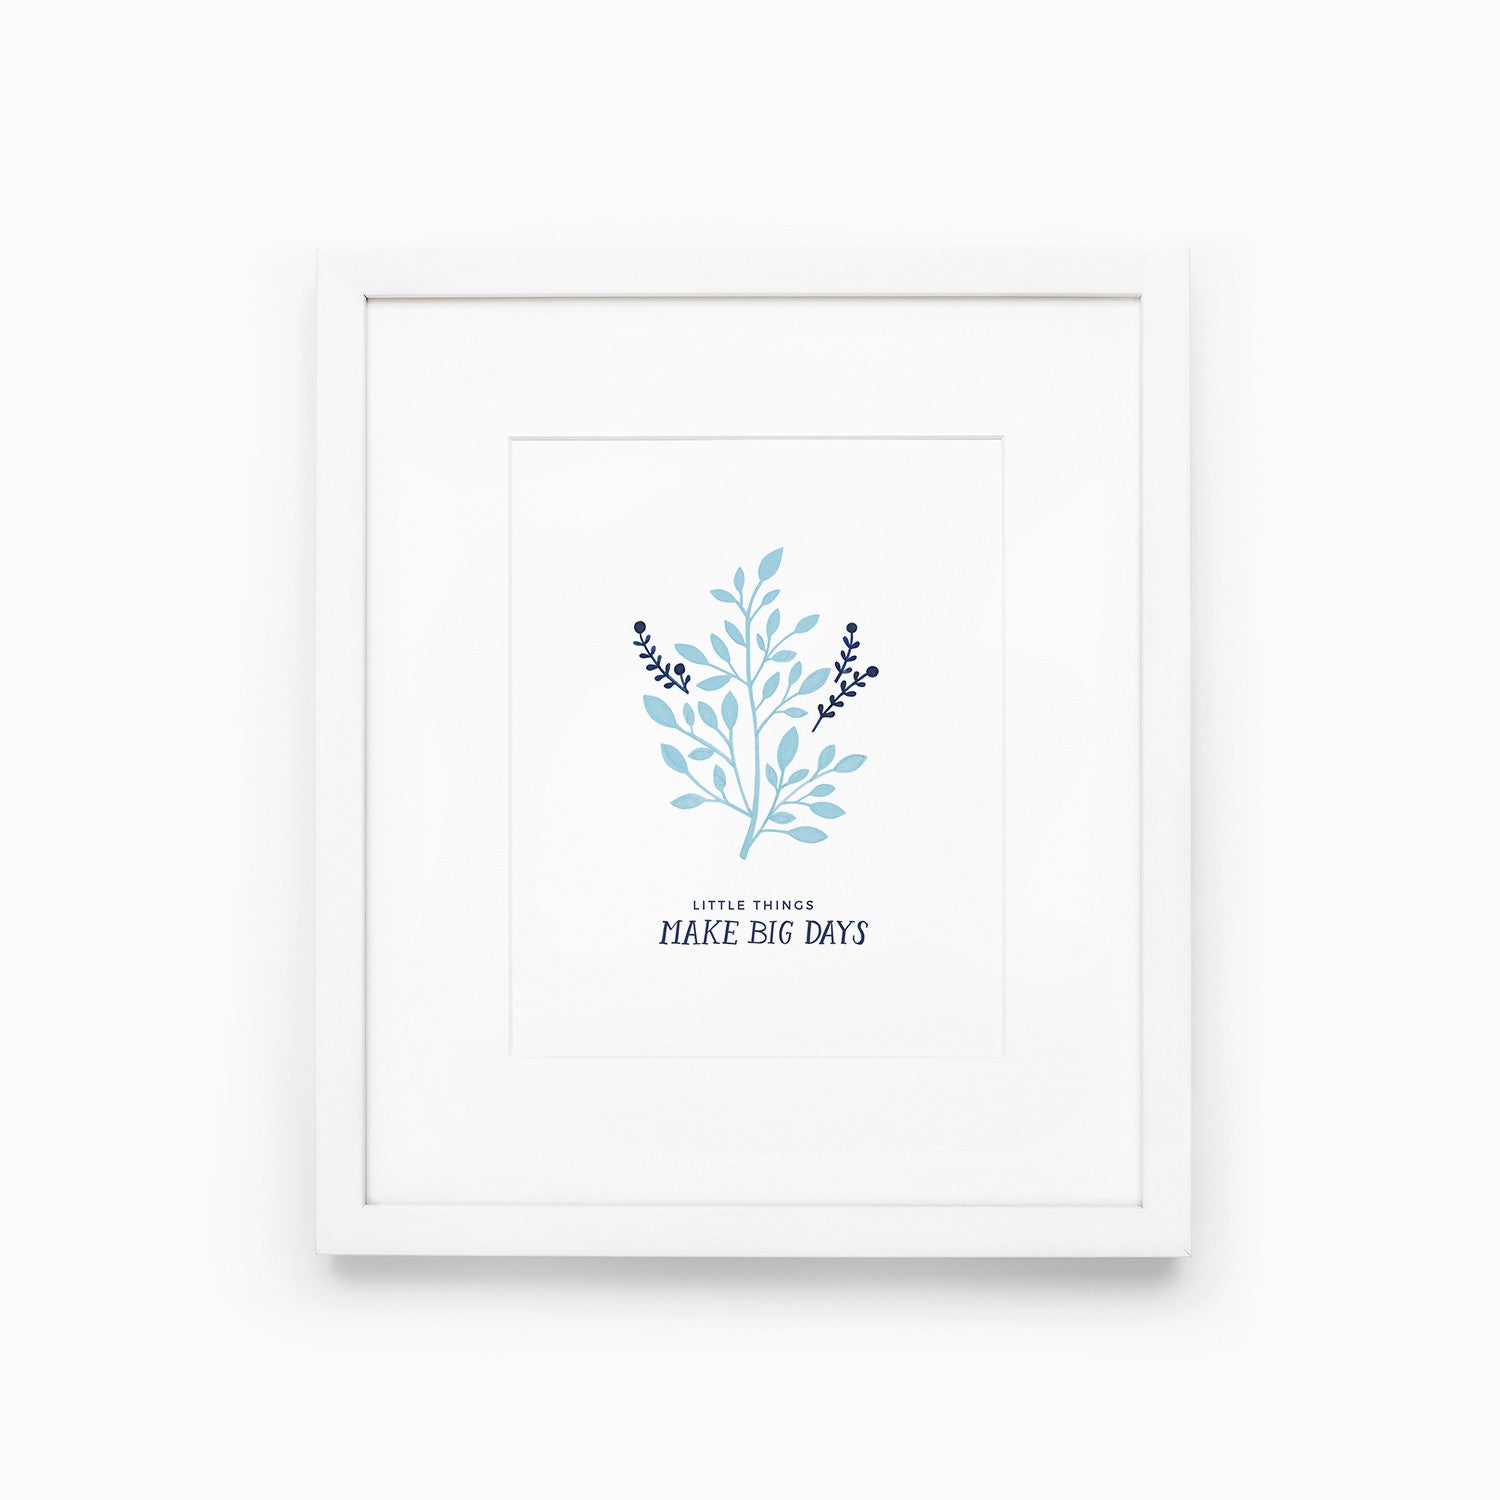 "Little Things - 5"" x 7"" Printable Art Print"